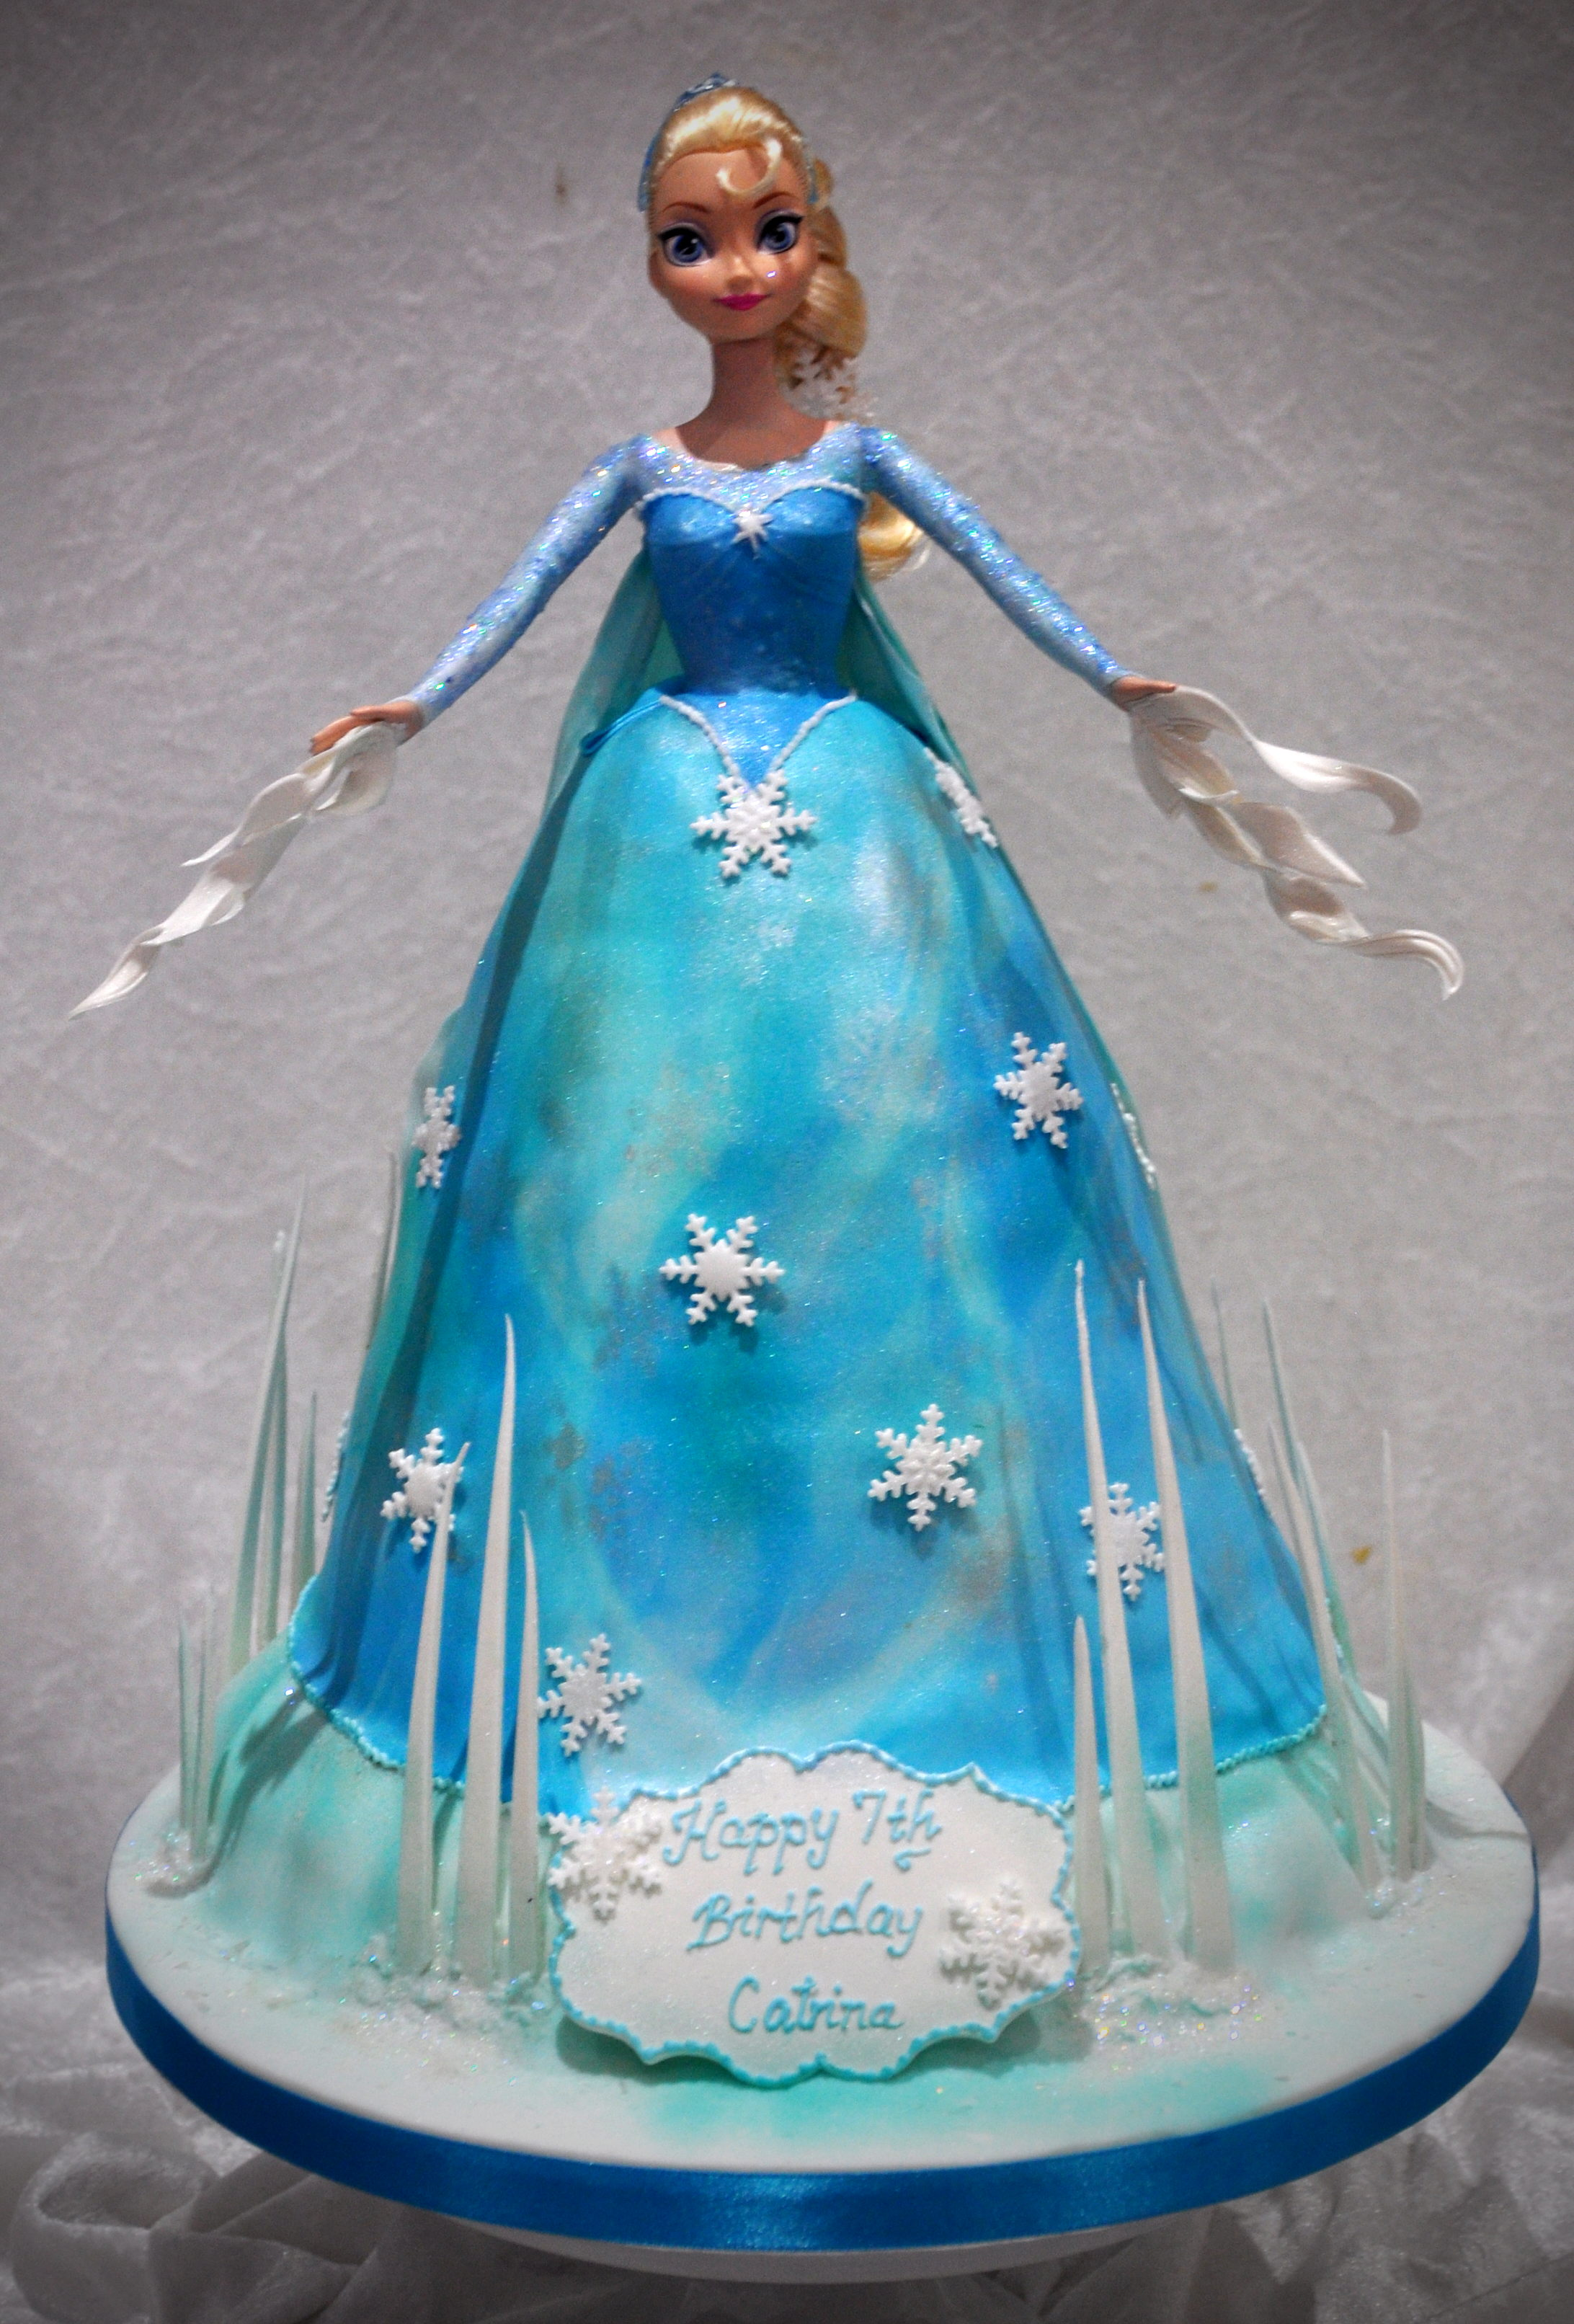 Frozen birthday cake -